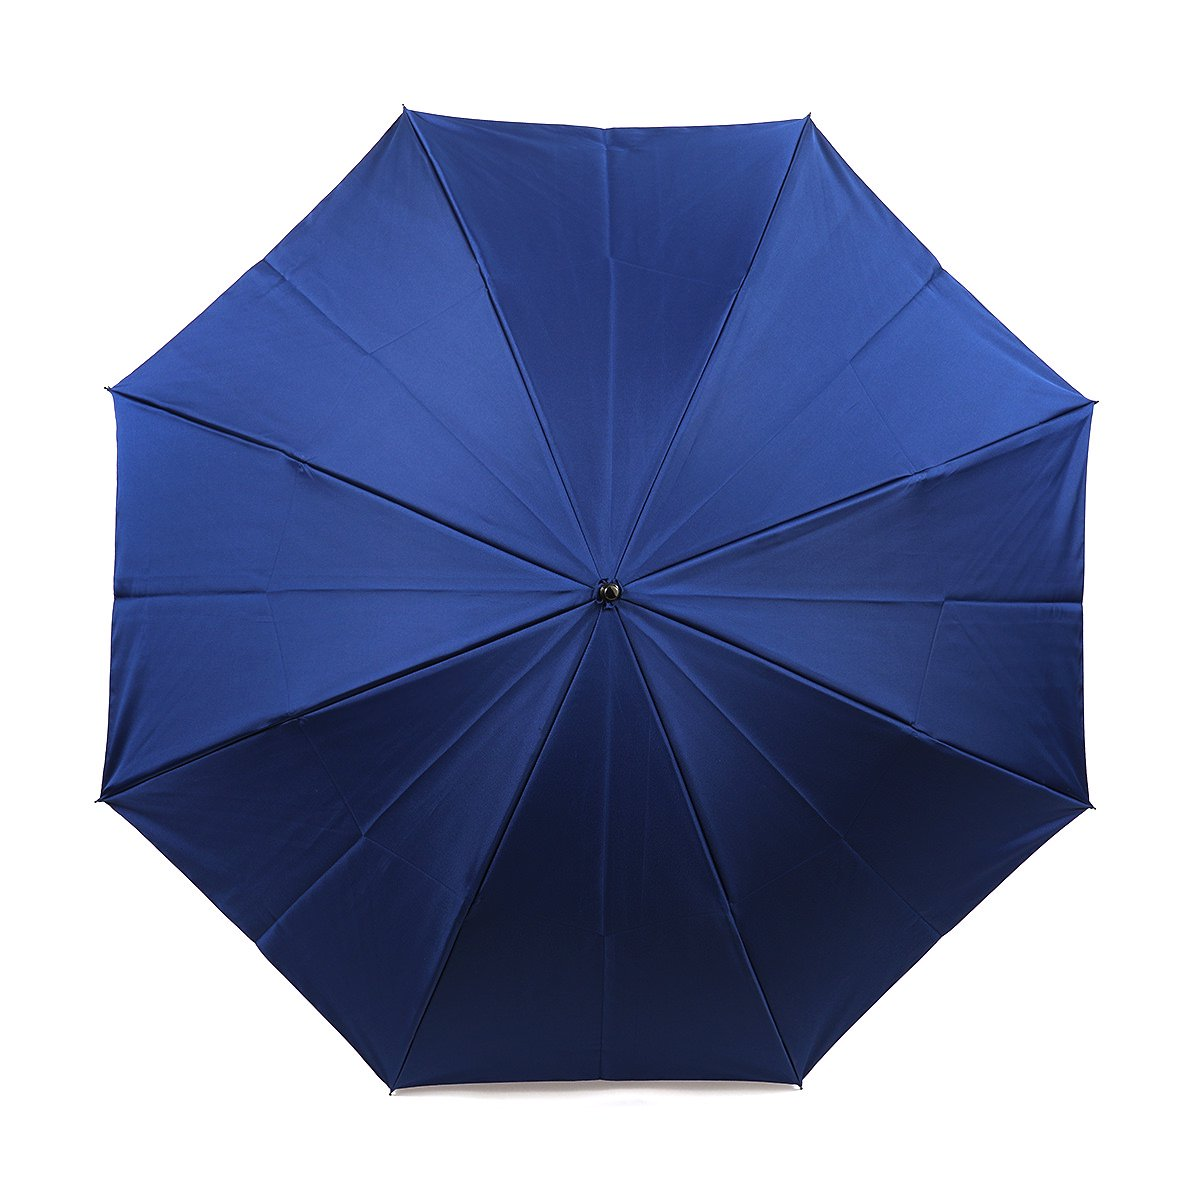 608K SOLID FOLDING UMBRELLA 詳細画像1